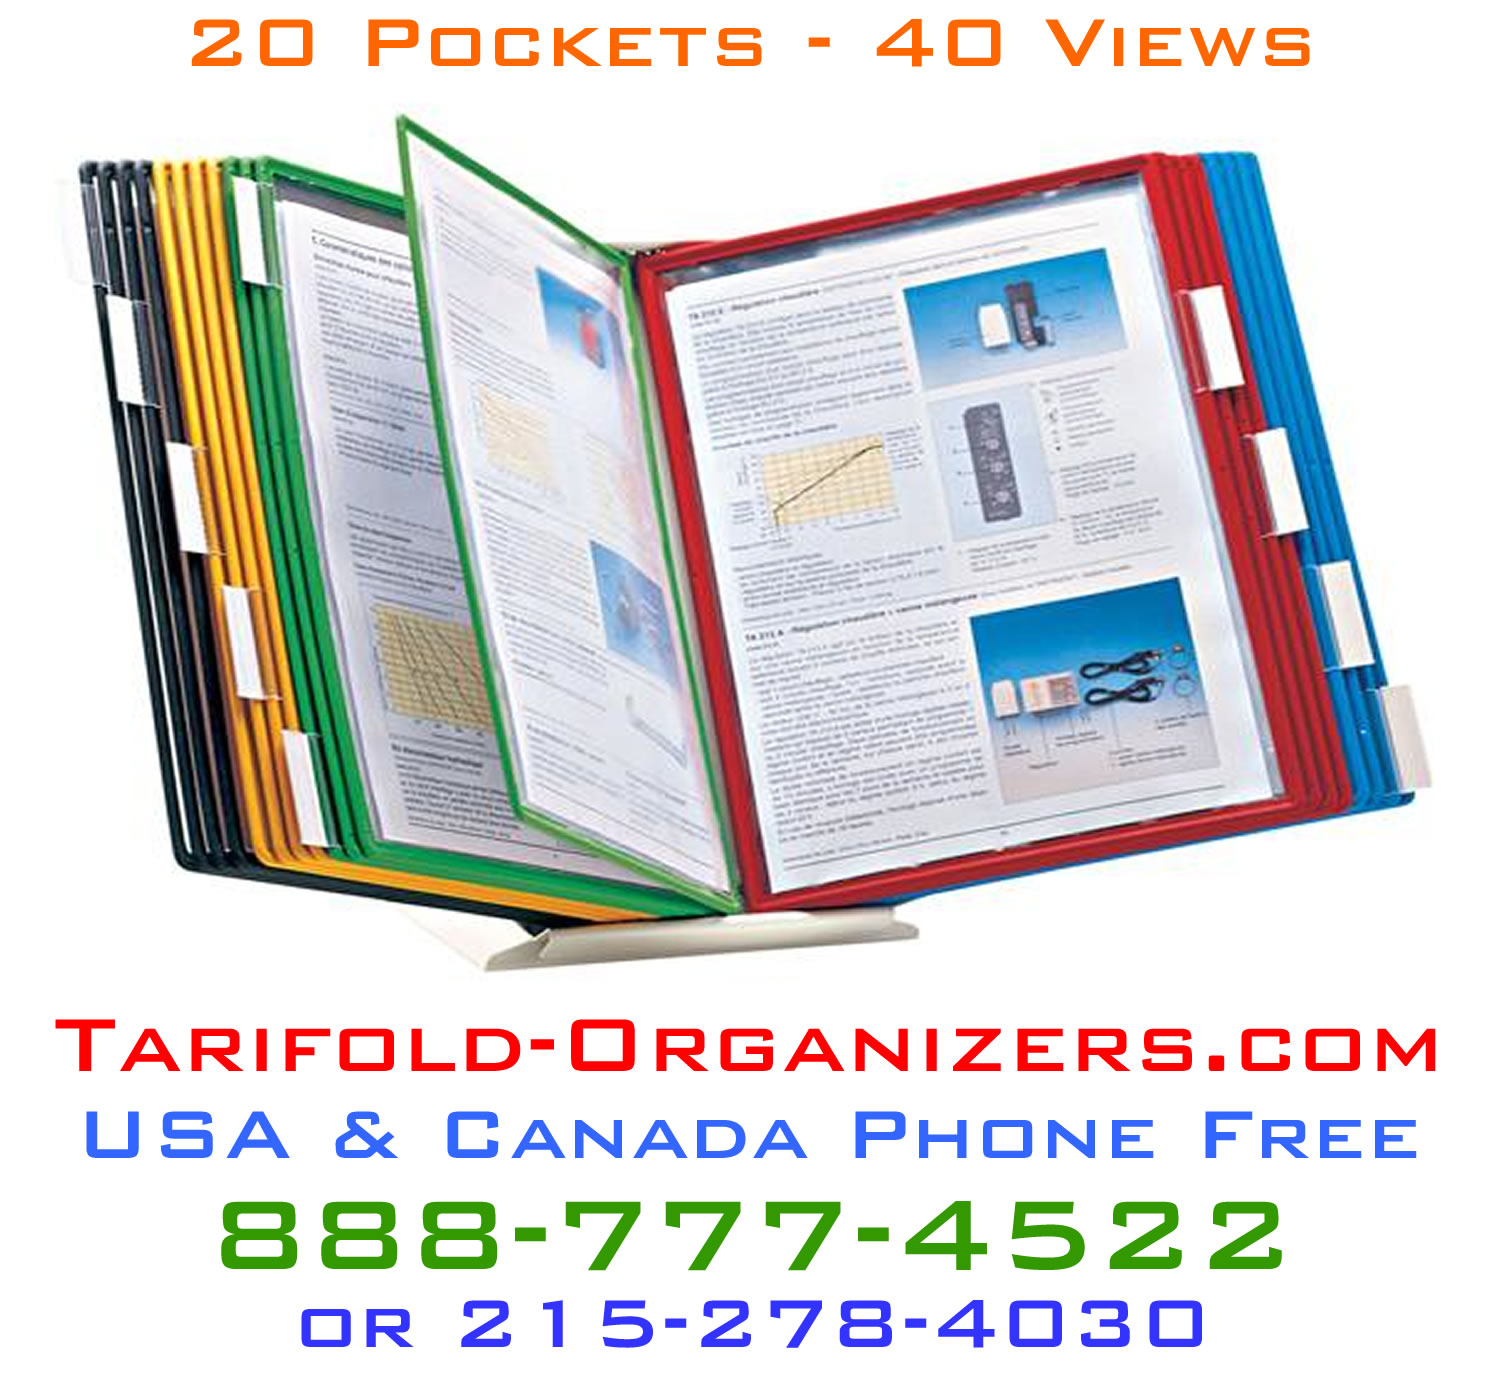 Tarifold desktop organizer for organizing visual graphs, charts and productivity assessments.